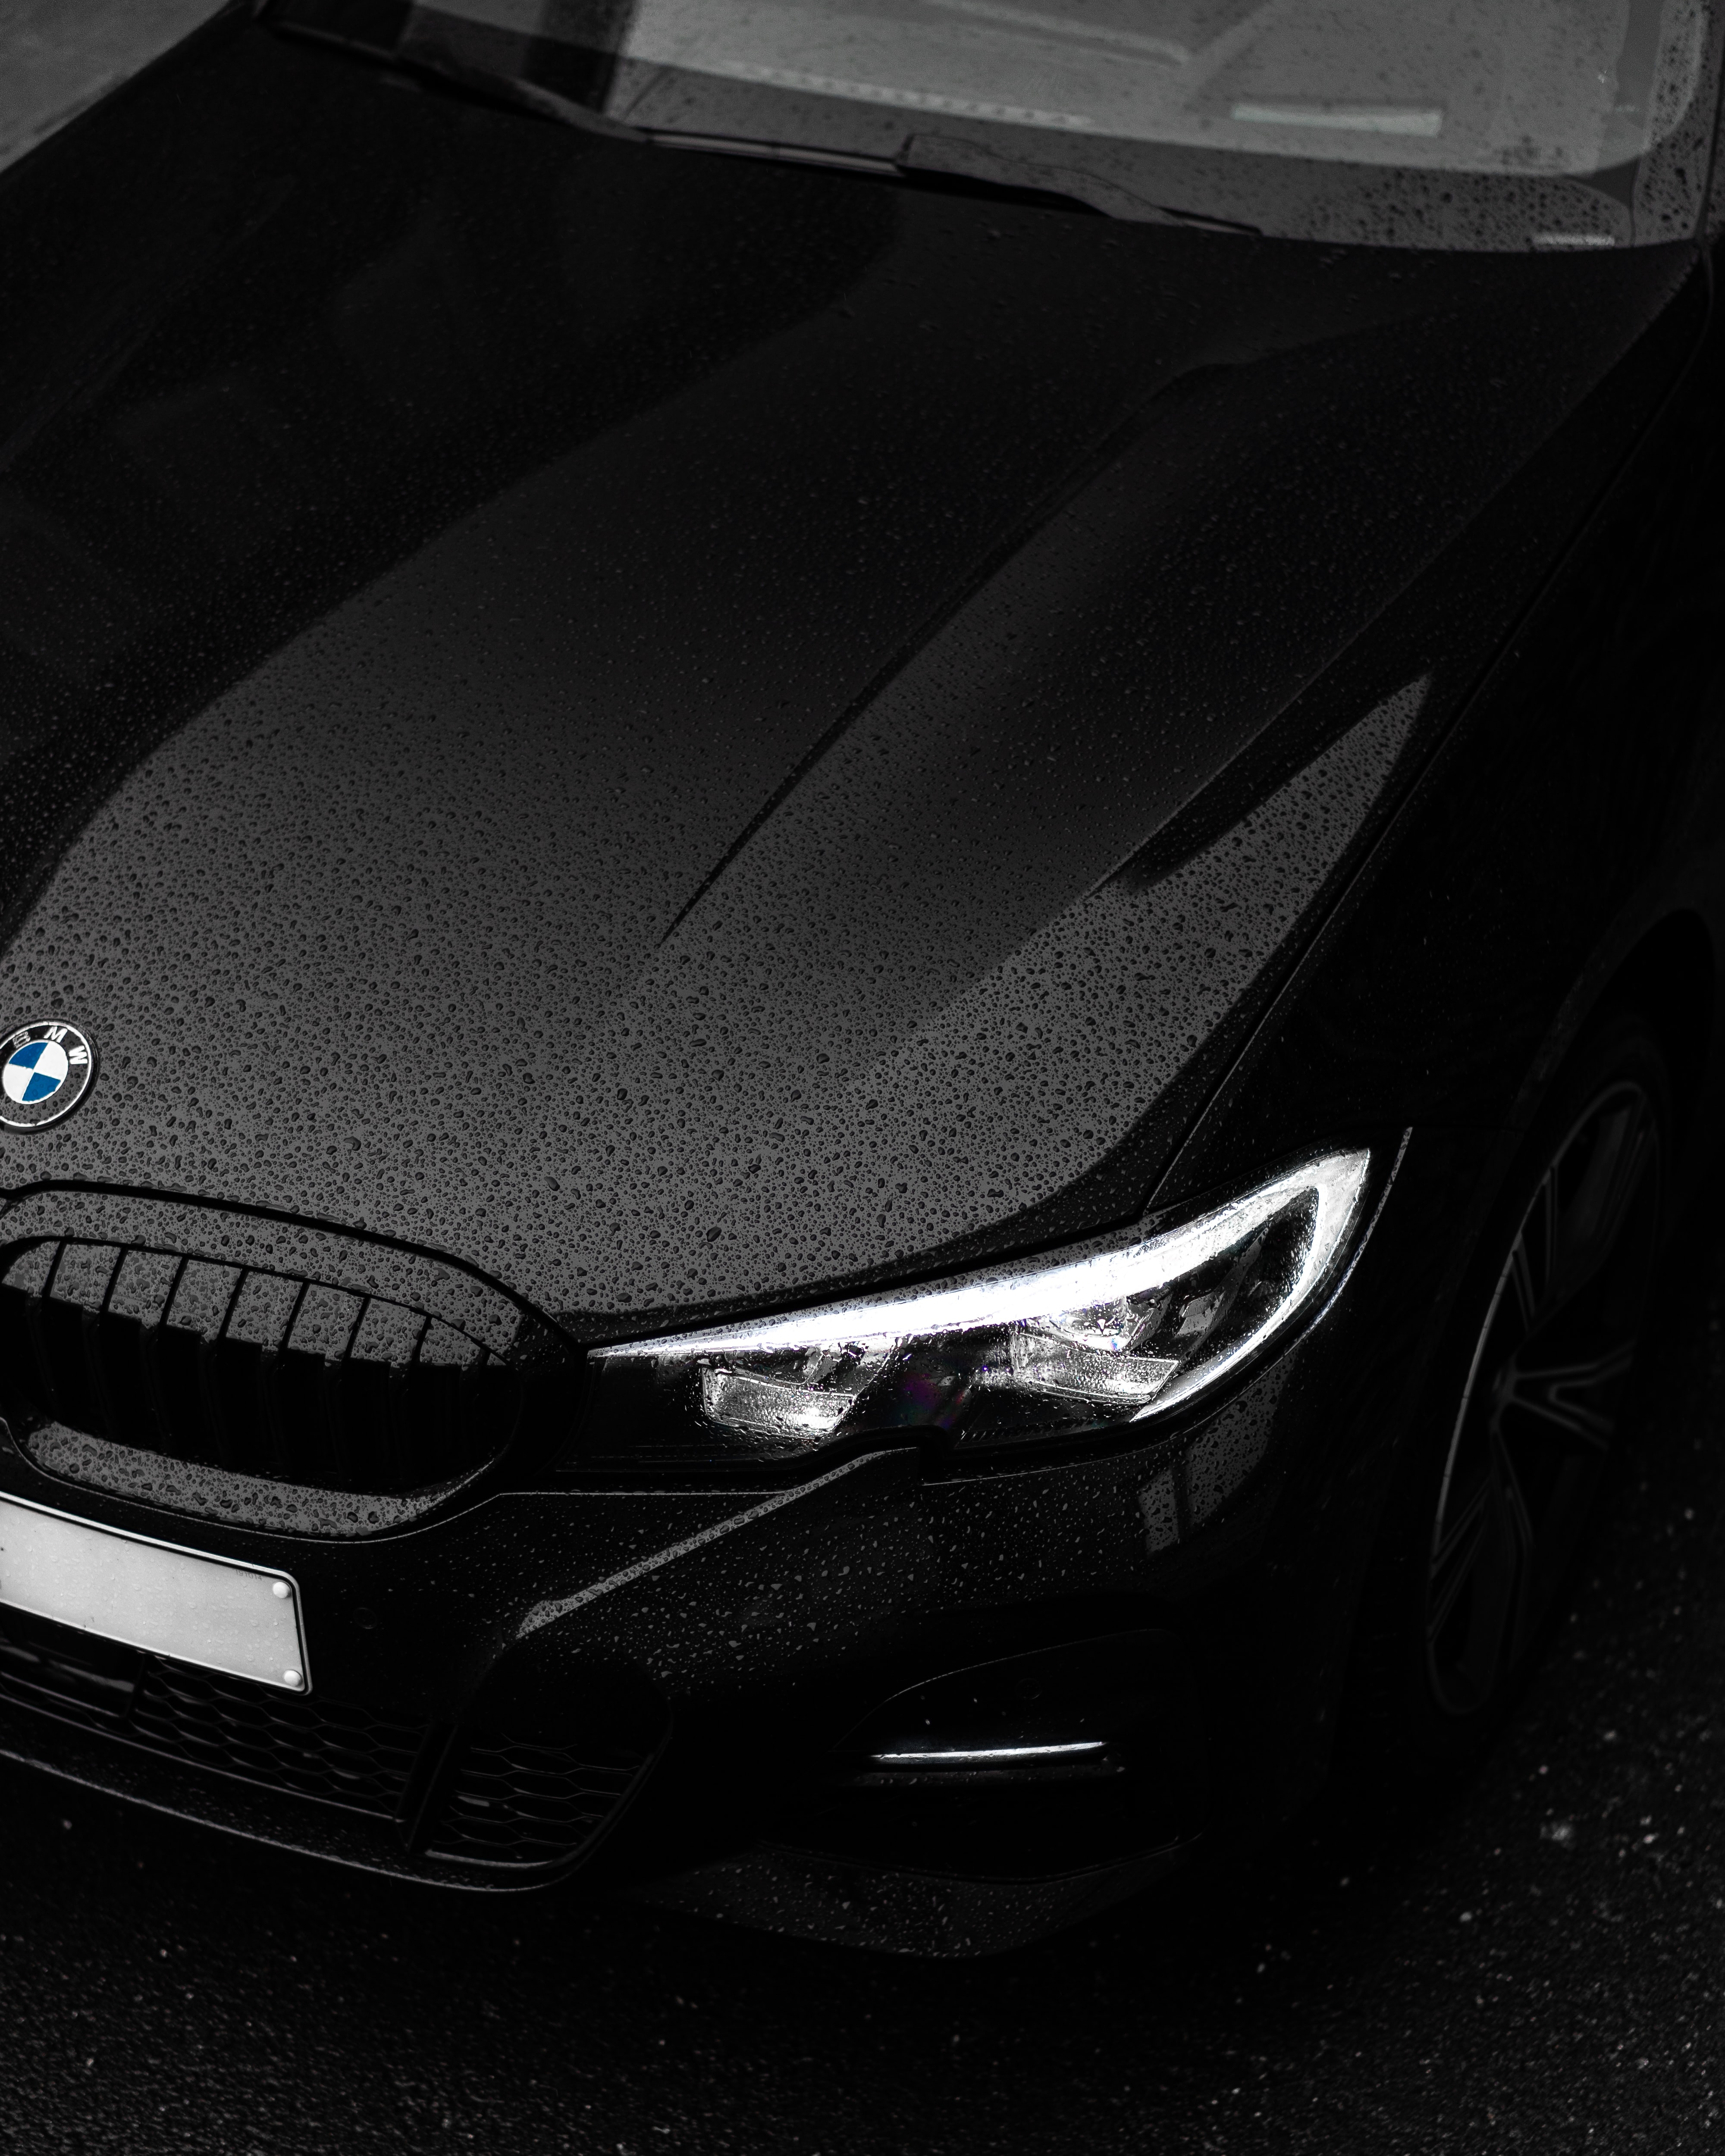 Black Bmw Car In Close Up Photography Photo Free Tire Image On Unsplash